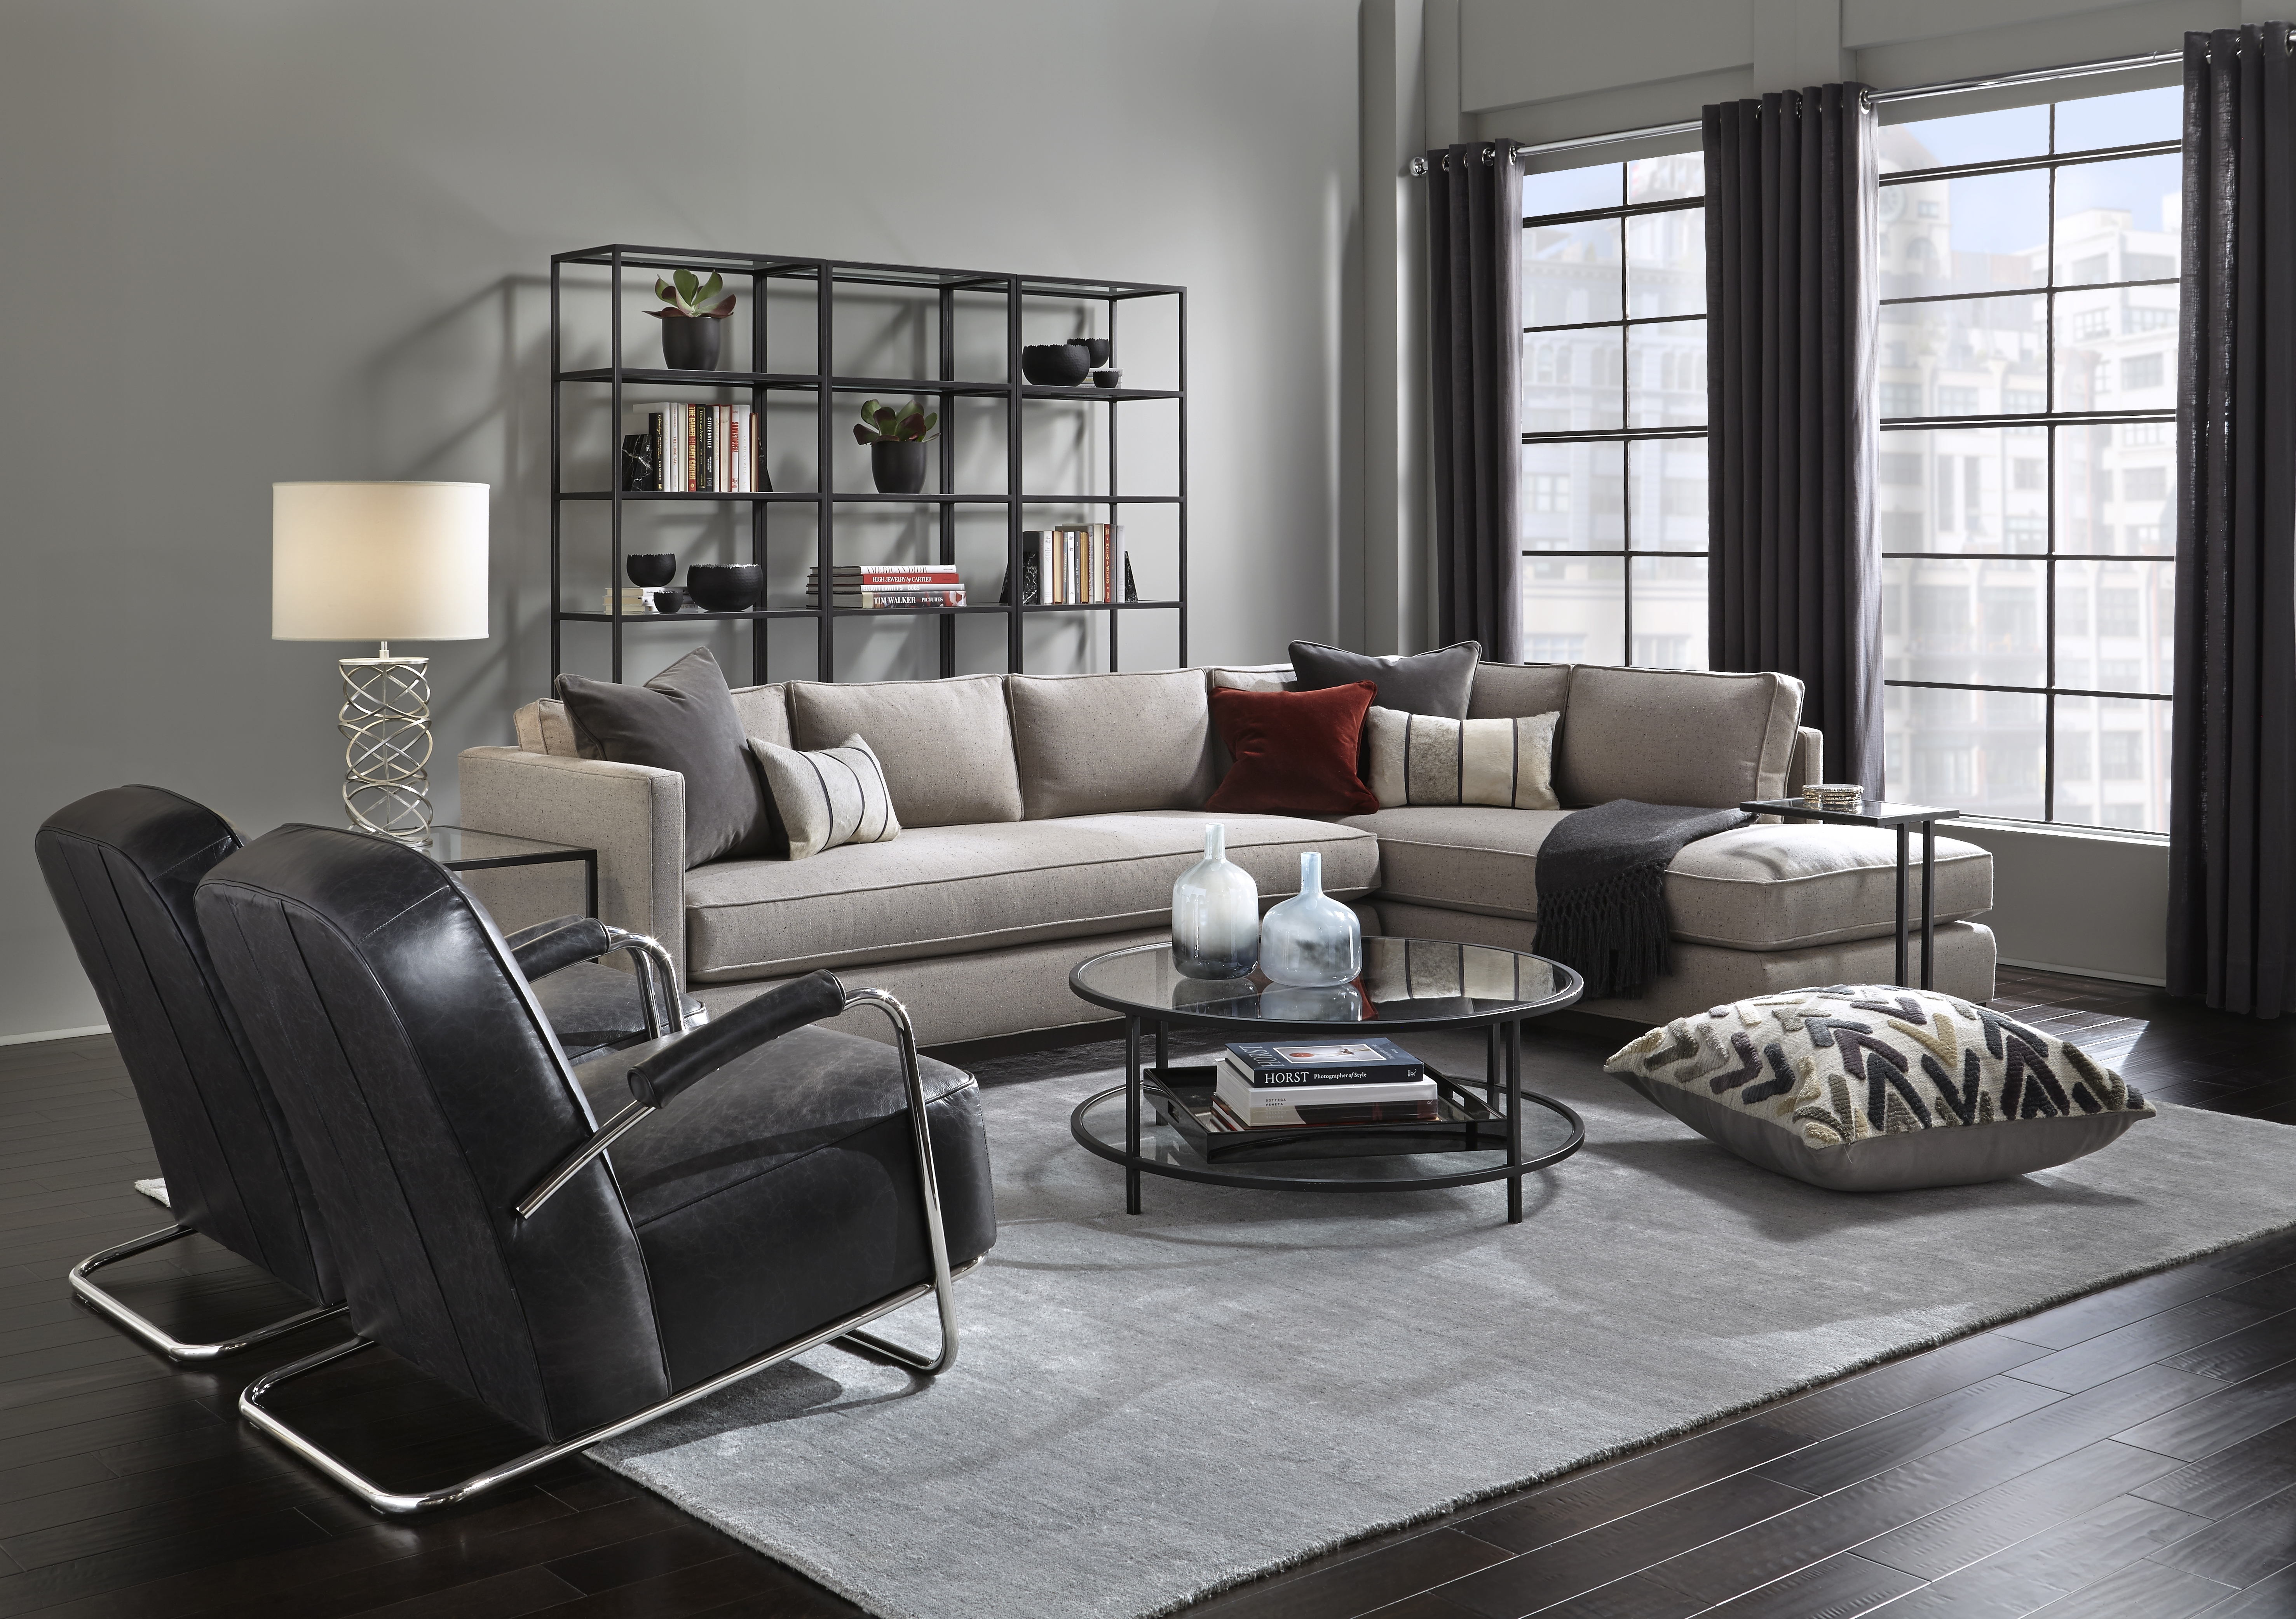 12 Designer Picked Sofas For Every Budget, And People With Pets And Within Restoration Hardware Sectional Sofas (Photo 7 of 10)